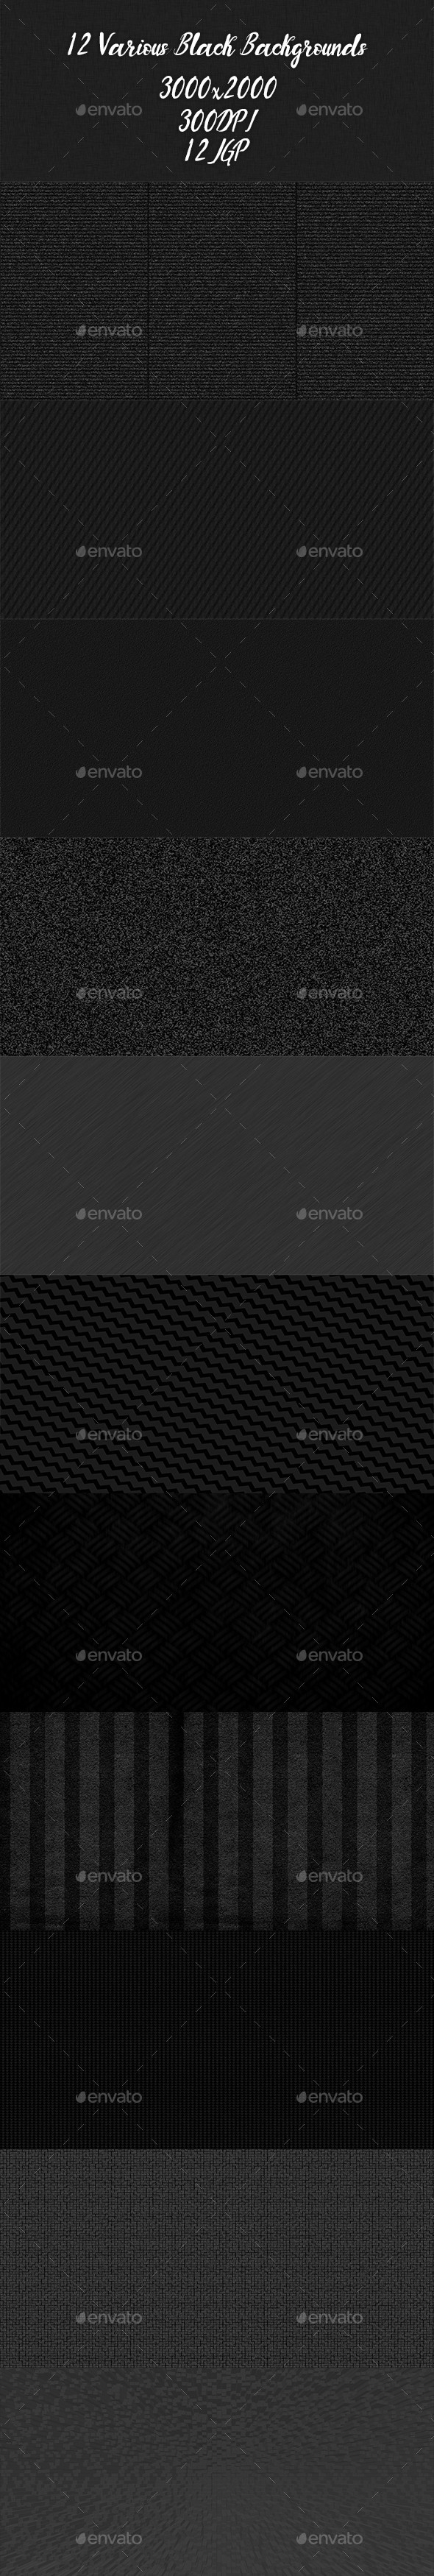 Various Black Backgrounds - Abstract Backgrounds